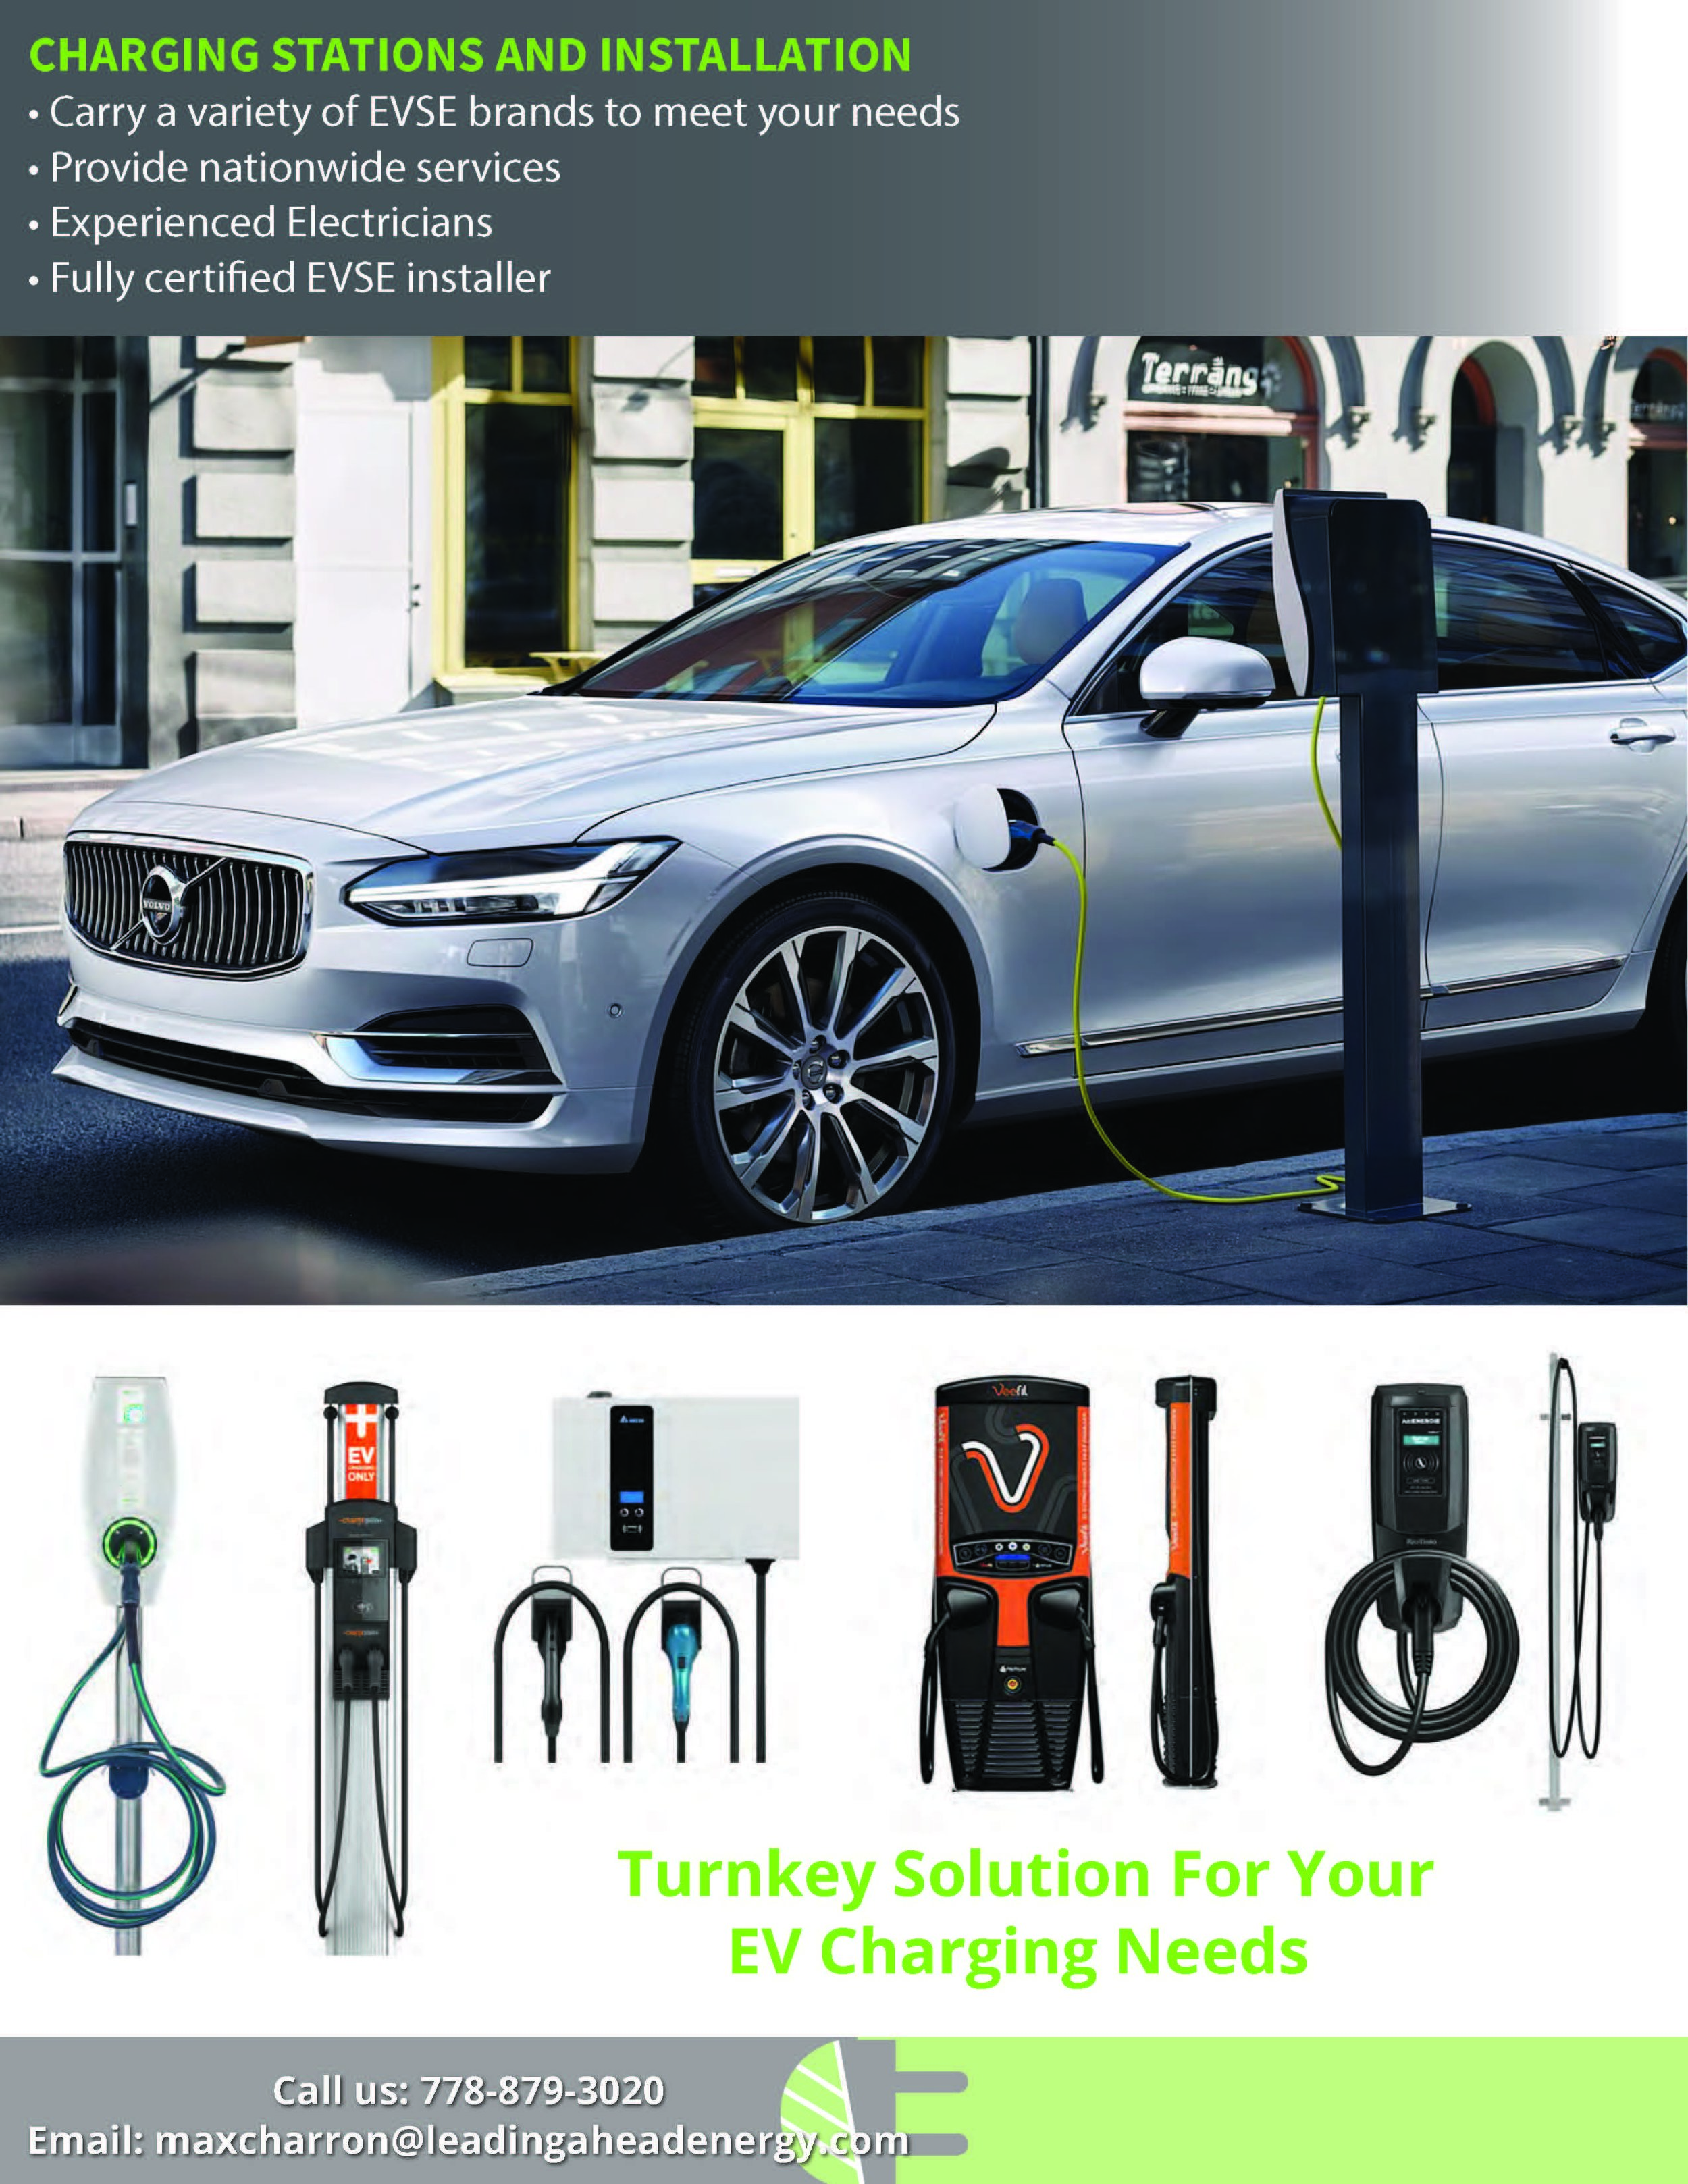 Electric vehicle charging infrastructure municipal